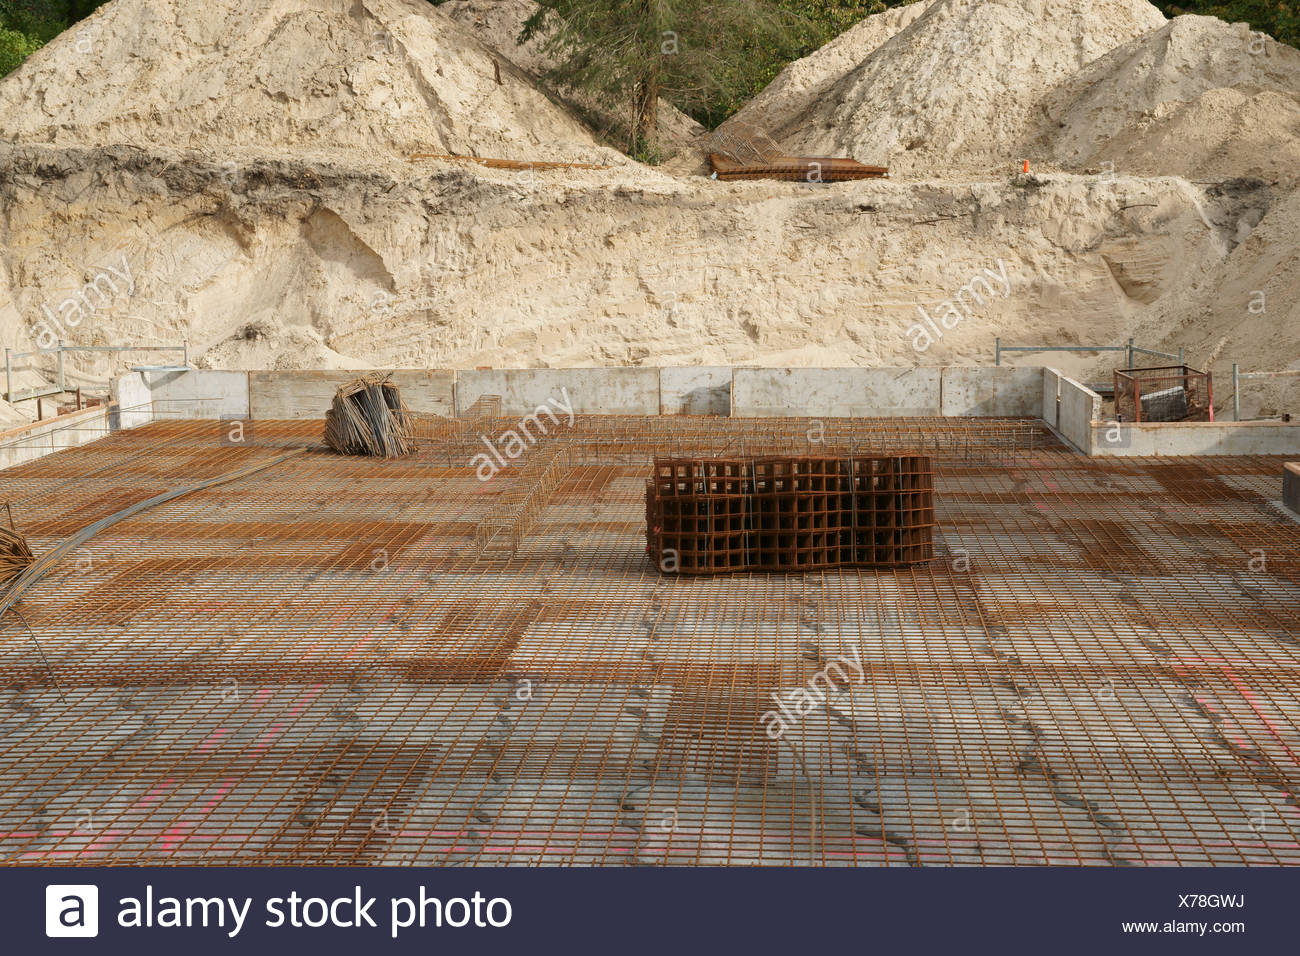 plate, house-build, reinforced concrete, baugrube, eigenheimbau, - Stock Image